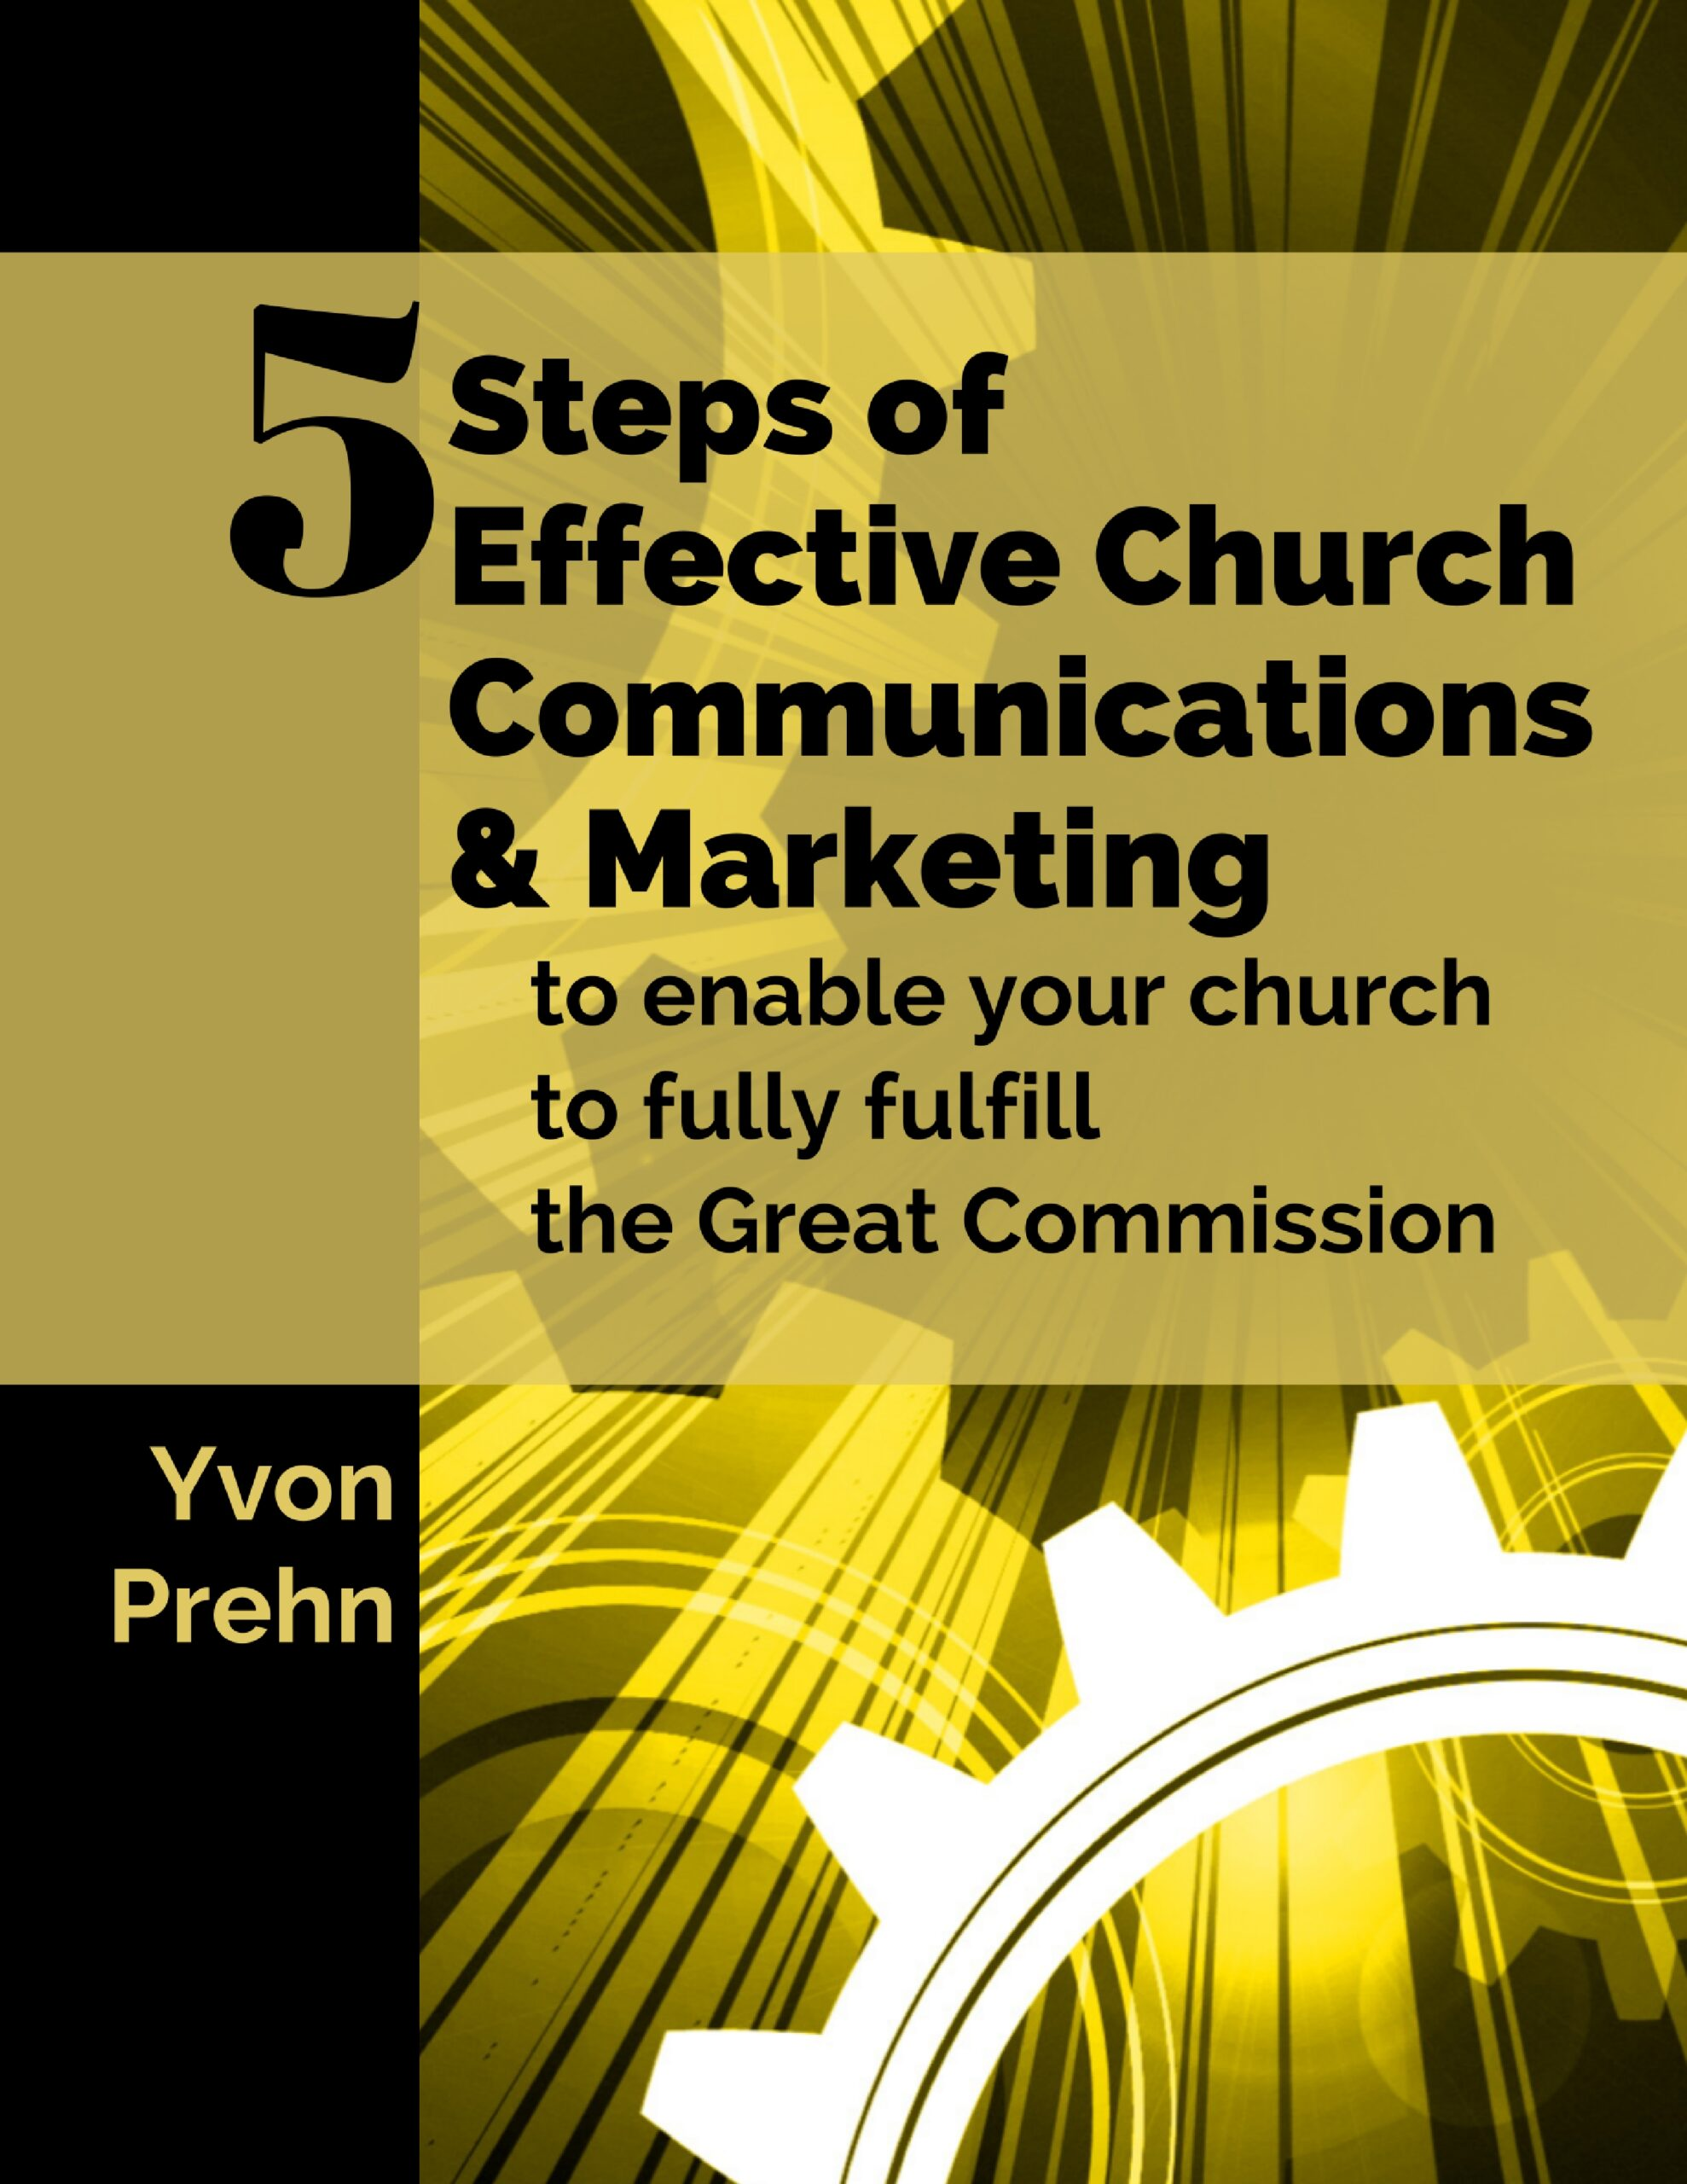 The 5 Steps of Effective Church Communications & Marketing, to enable your church to fully fulfill the Great Commission